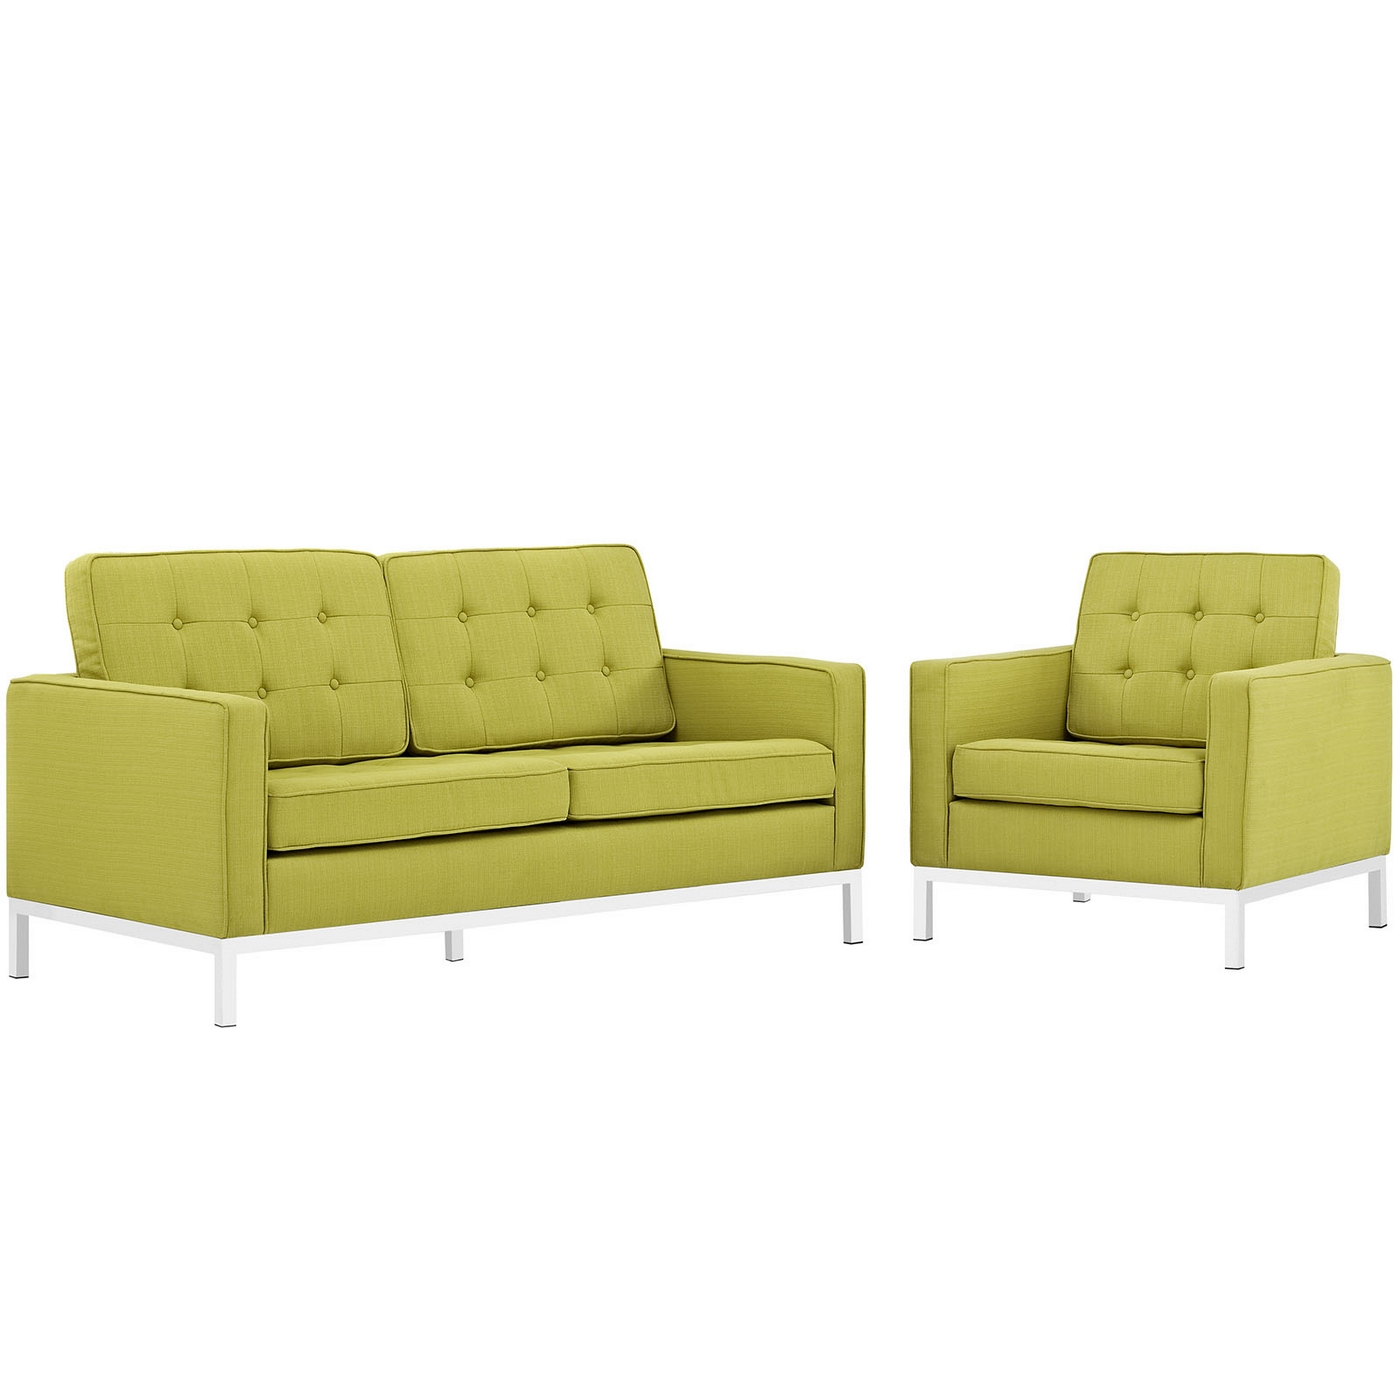 Loft Modern 2pc Upholstered Button Tufted Loveseat Armchair Set Wheatgrass